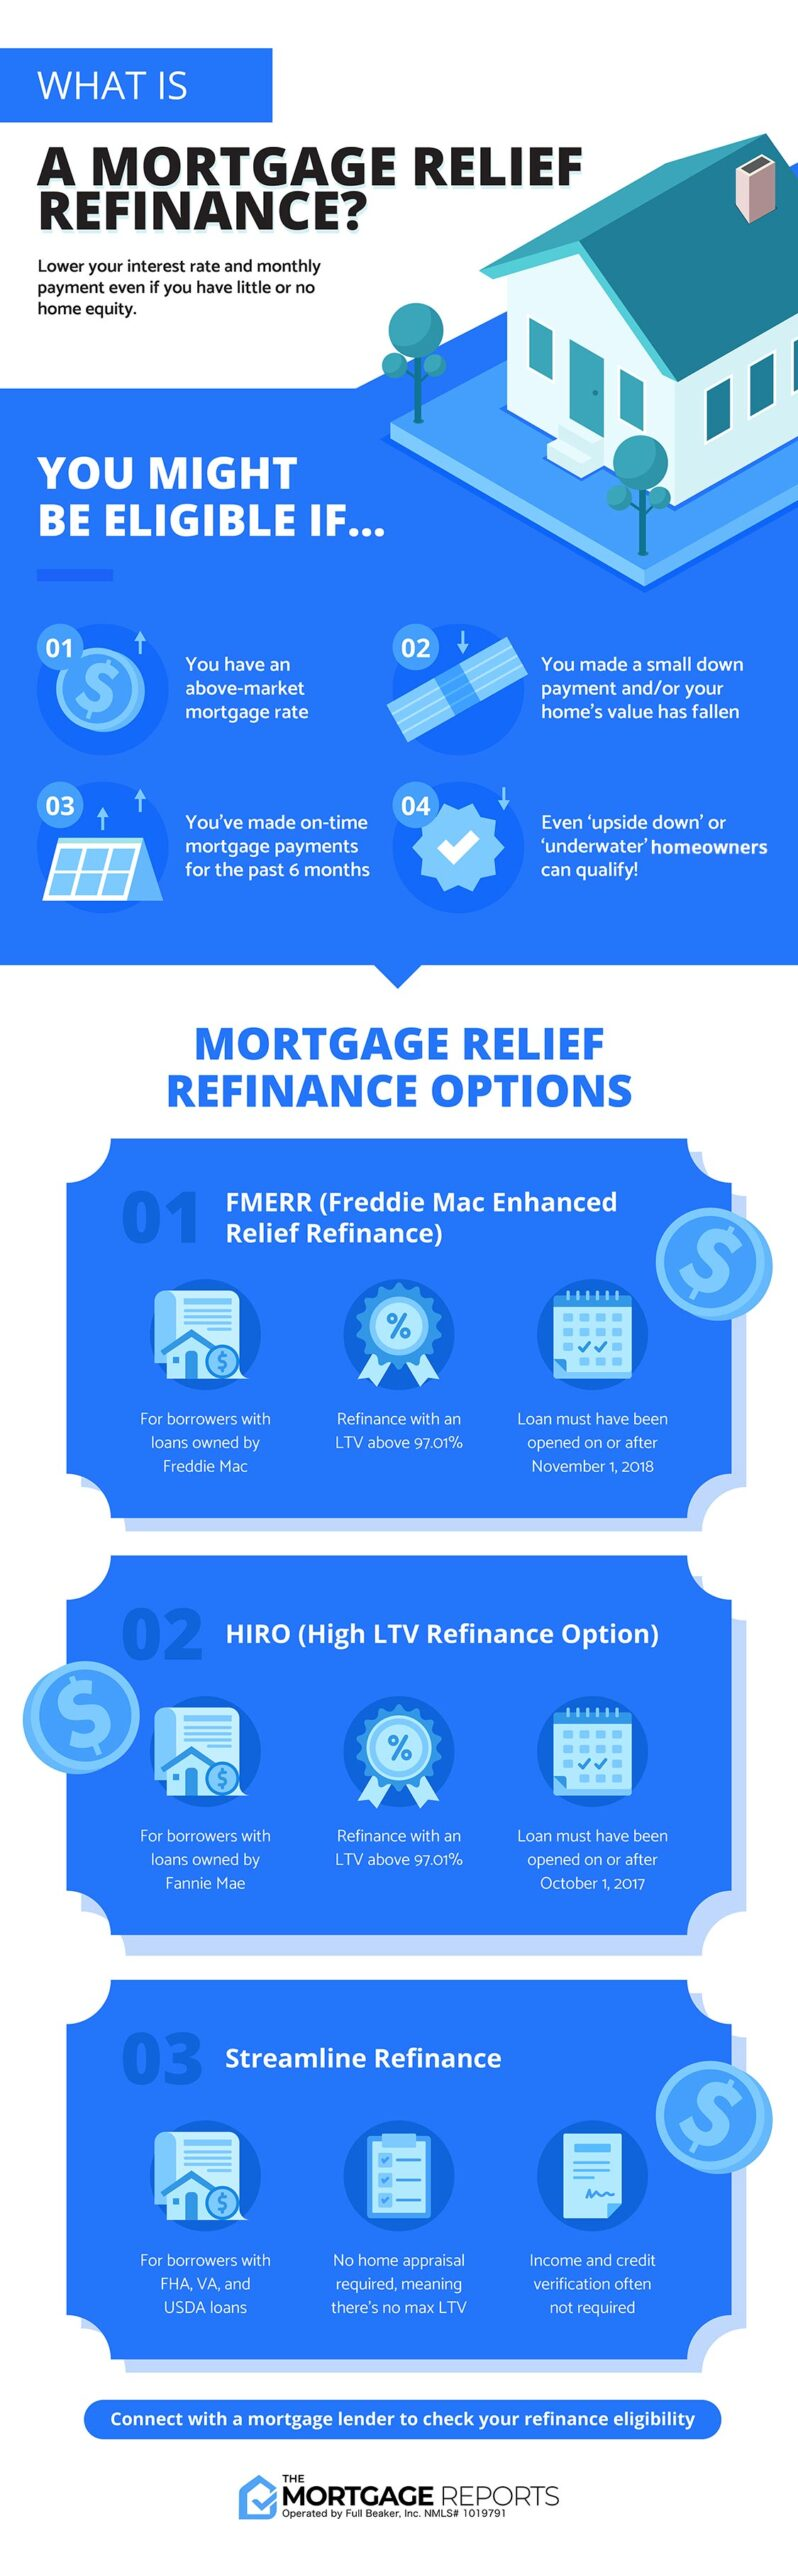 Infographic showing mortgage relief refinance options. Homeowners with little or no equity might qualify for a FMERR loan, HIRO loan, or the Streamline Refinance. These options can offer a lower interest rate and cheaper monthly payment for homeowners in need of mortgage relief.